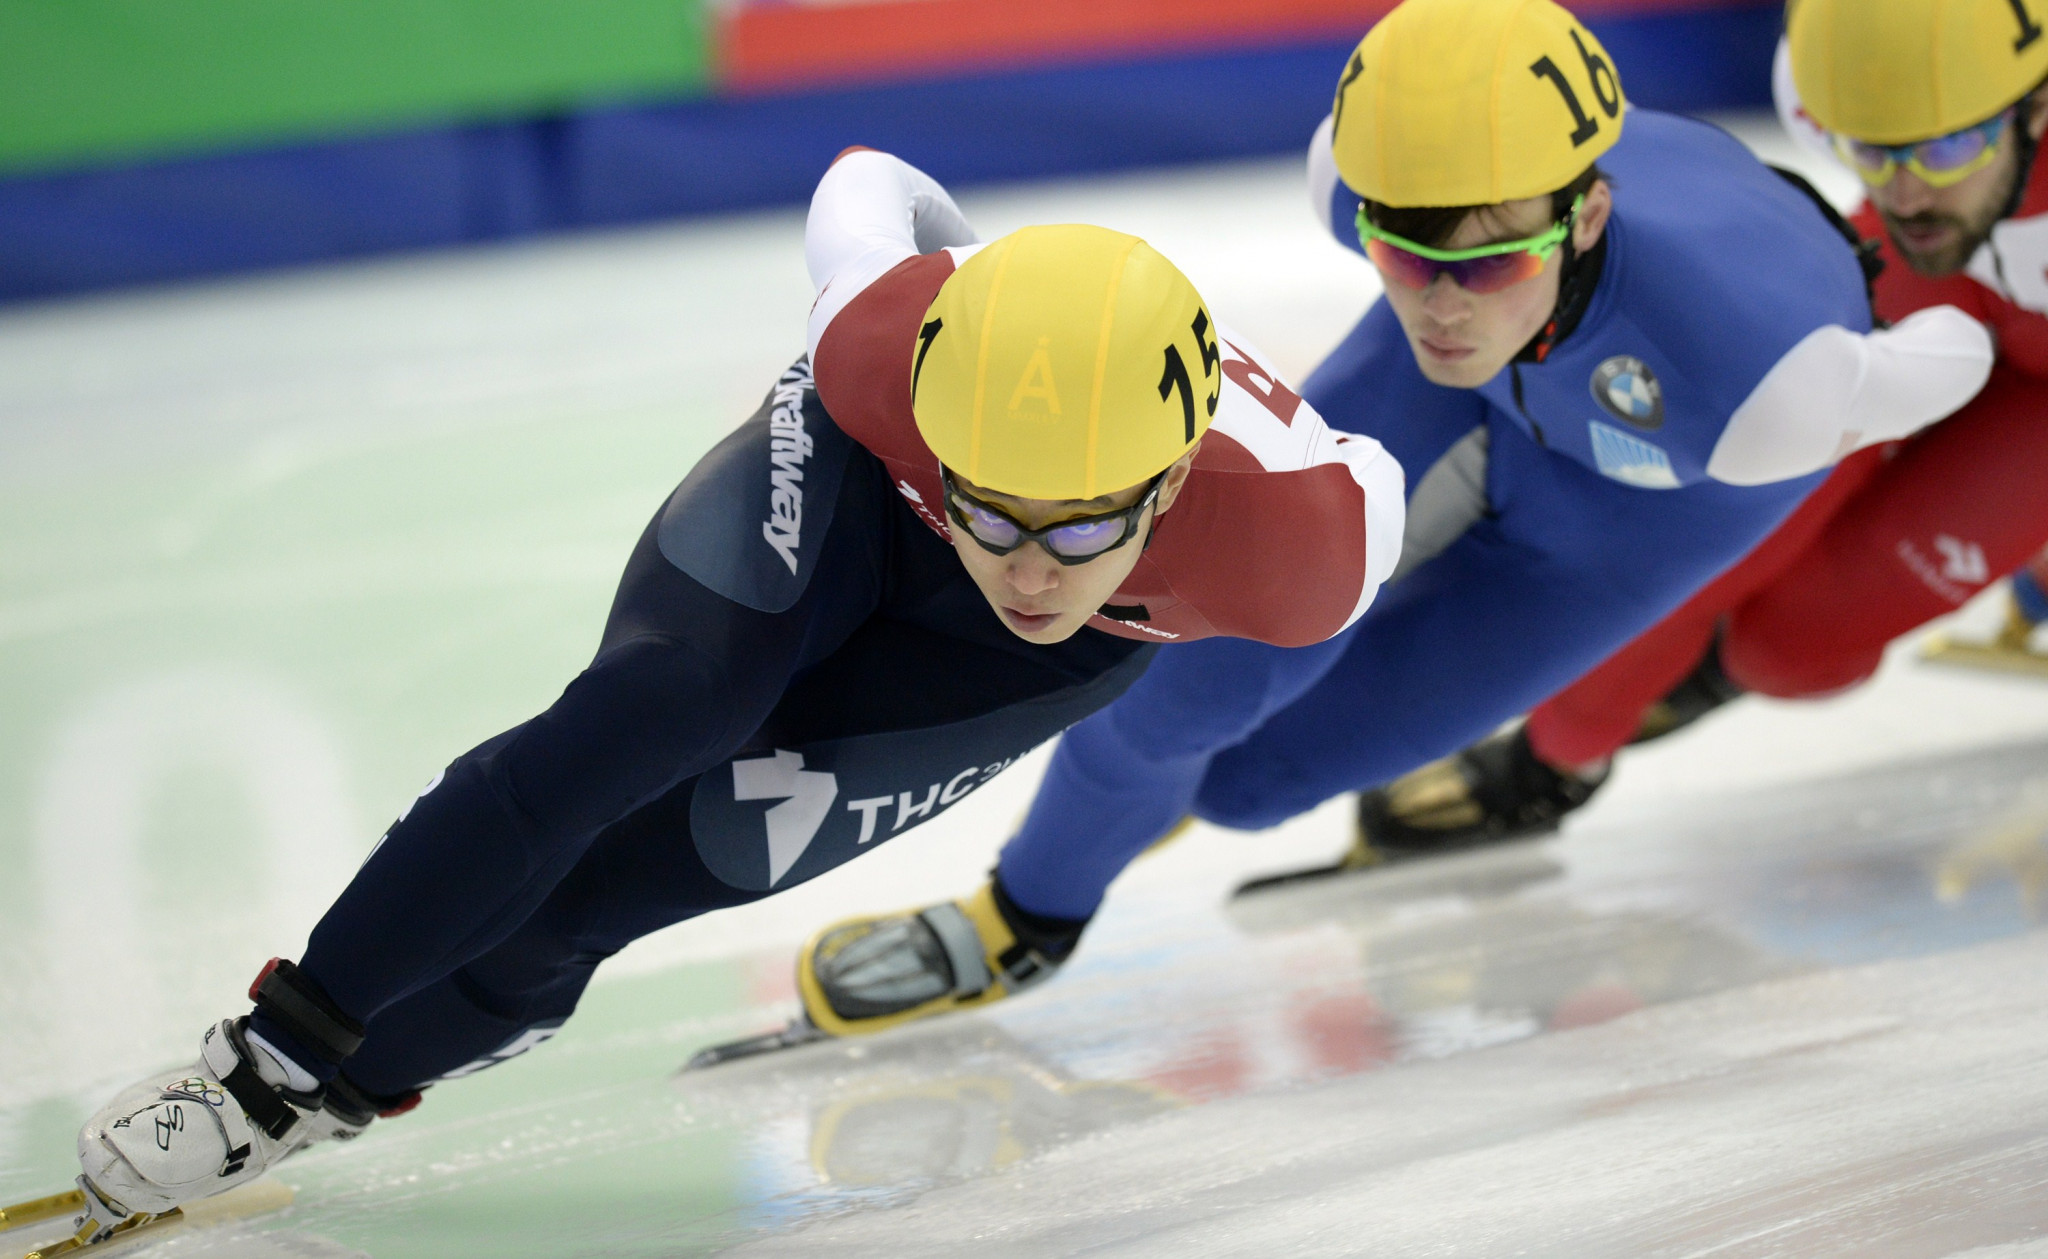 Short track speed skater Viktor Ahn has called on the IOC to publish the reason behind his exclusion from the list ©Getty Images